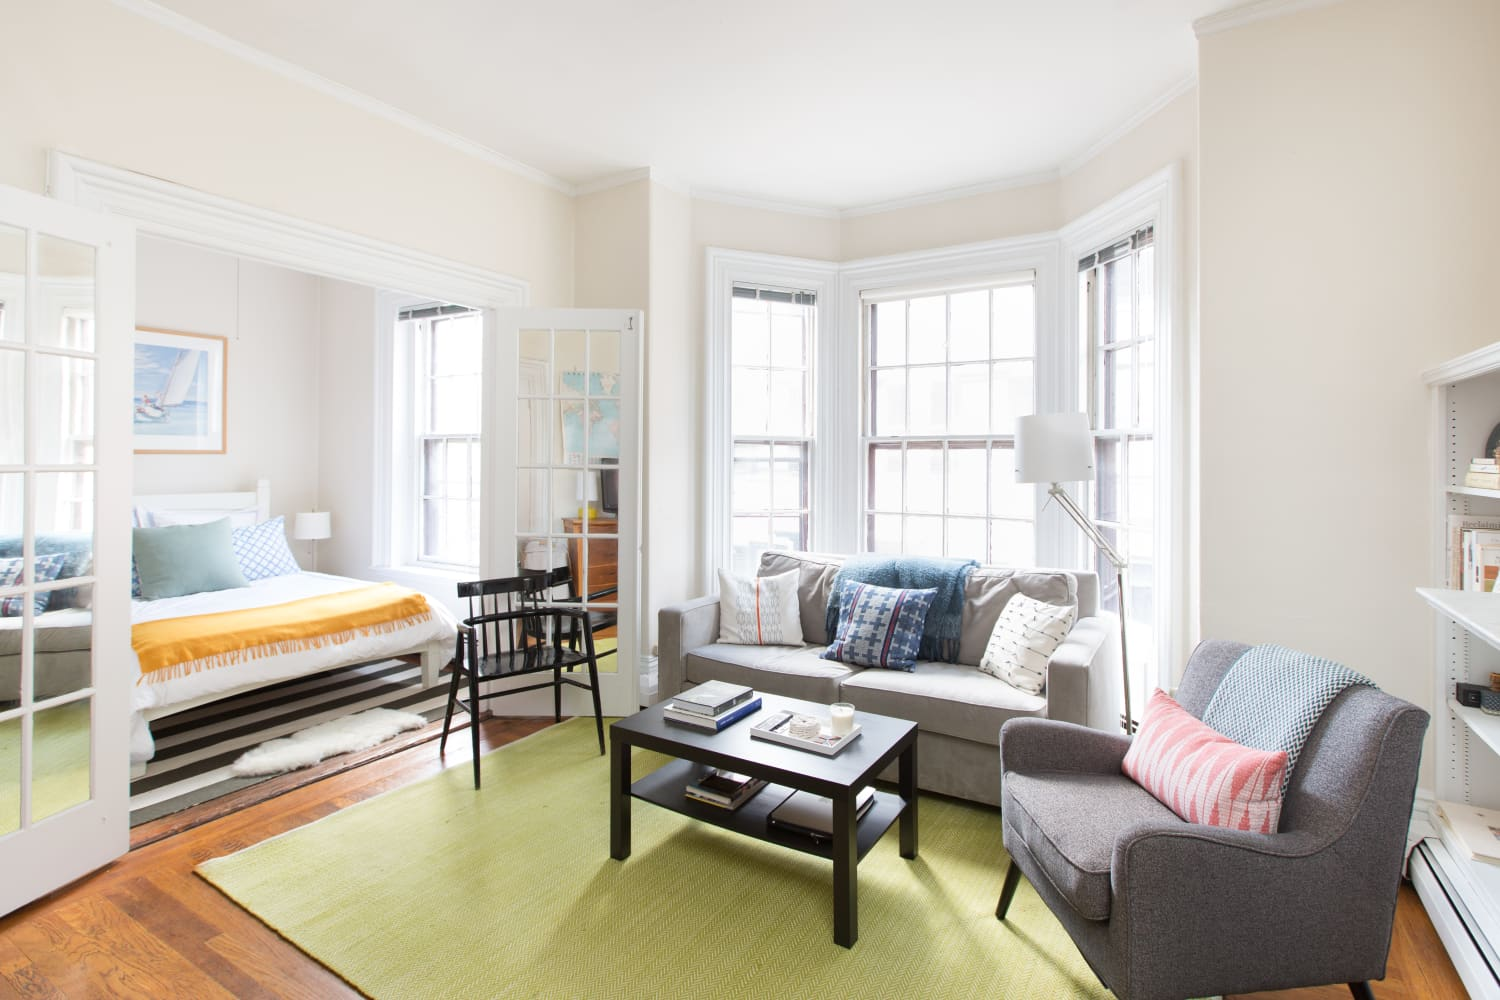 A Checklist to Hosting Overnight Guests When You Live in a Tiny Apartment